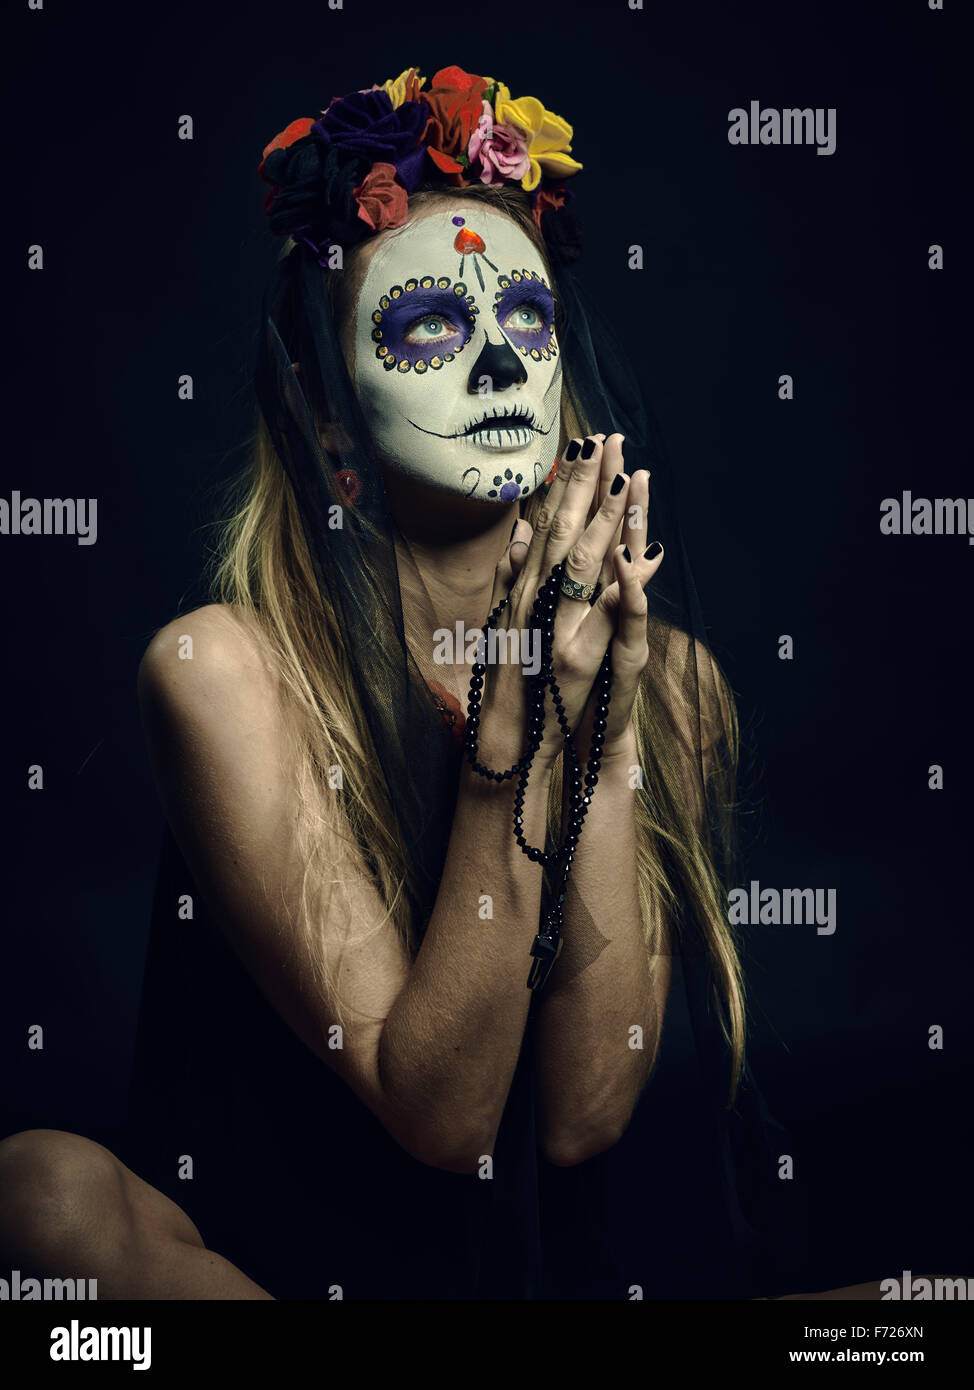 La Muerte. Classic Mexican Day of the Death makeup - Stock Image